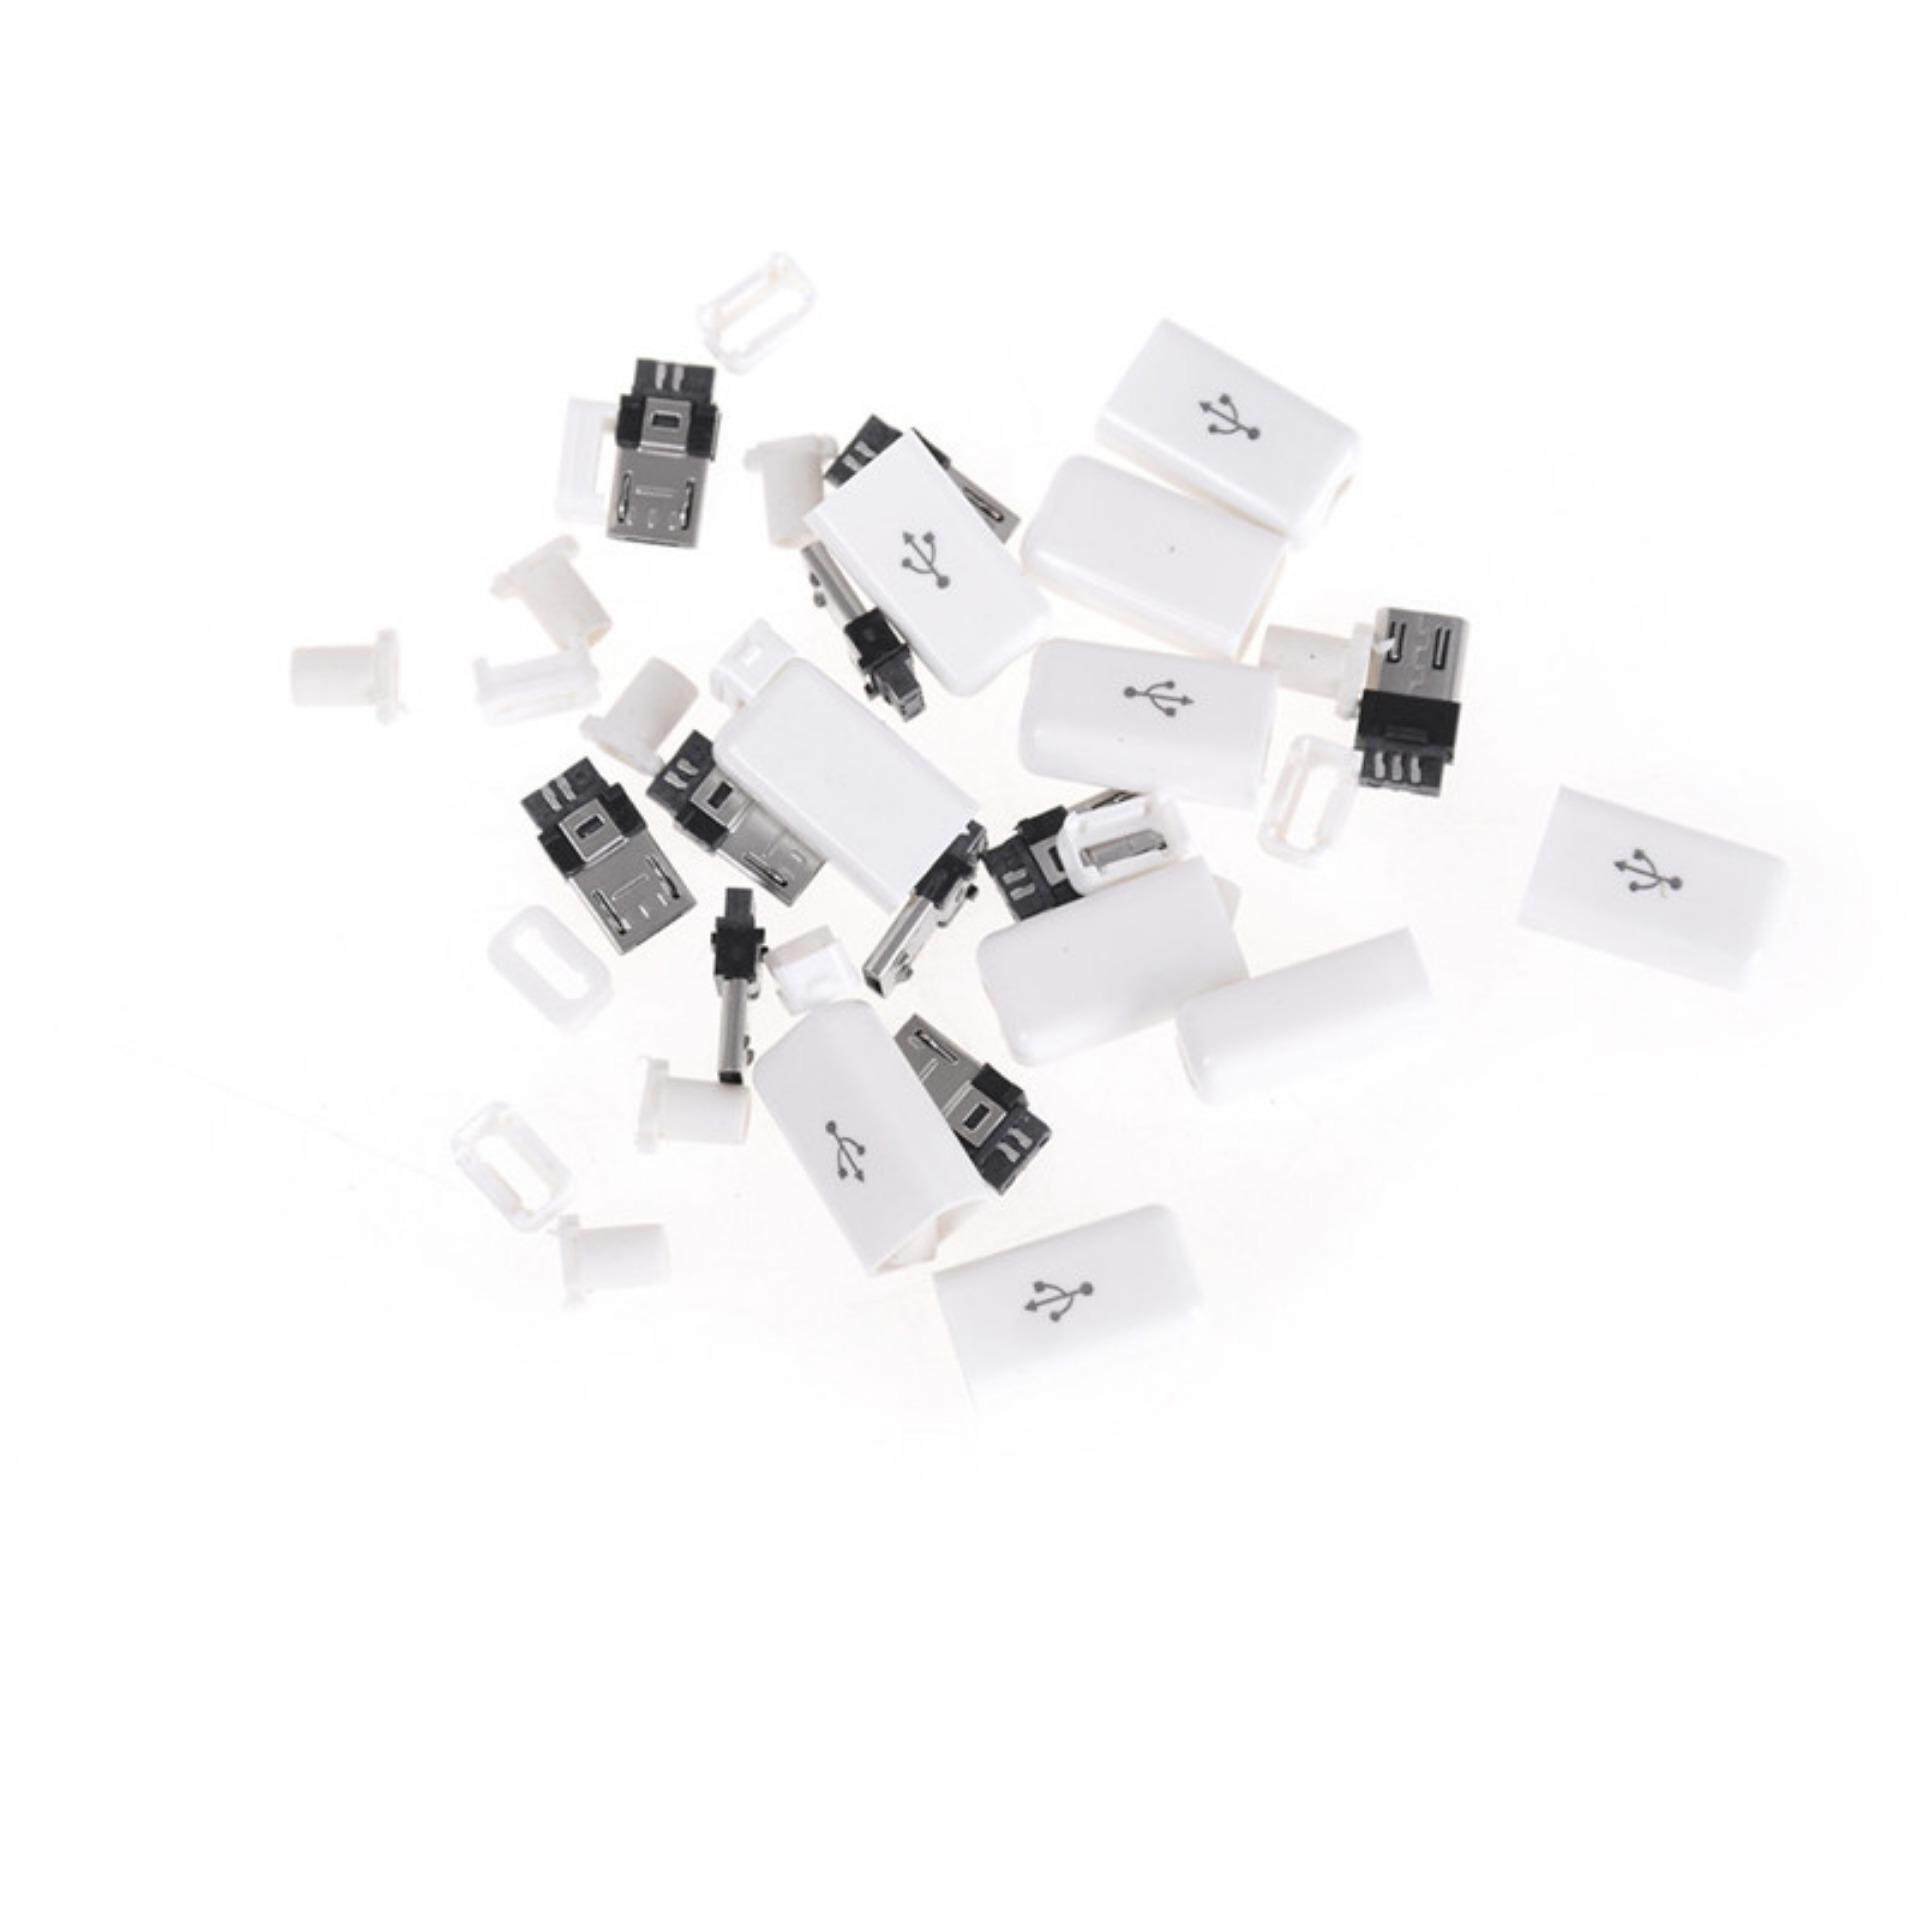 10sets DIY Micro USB Male Plug Connectors Kit W/ Covers White